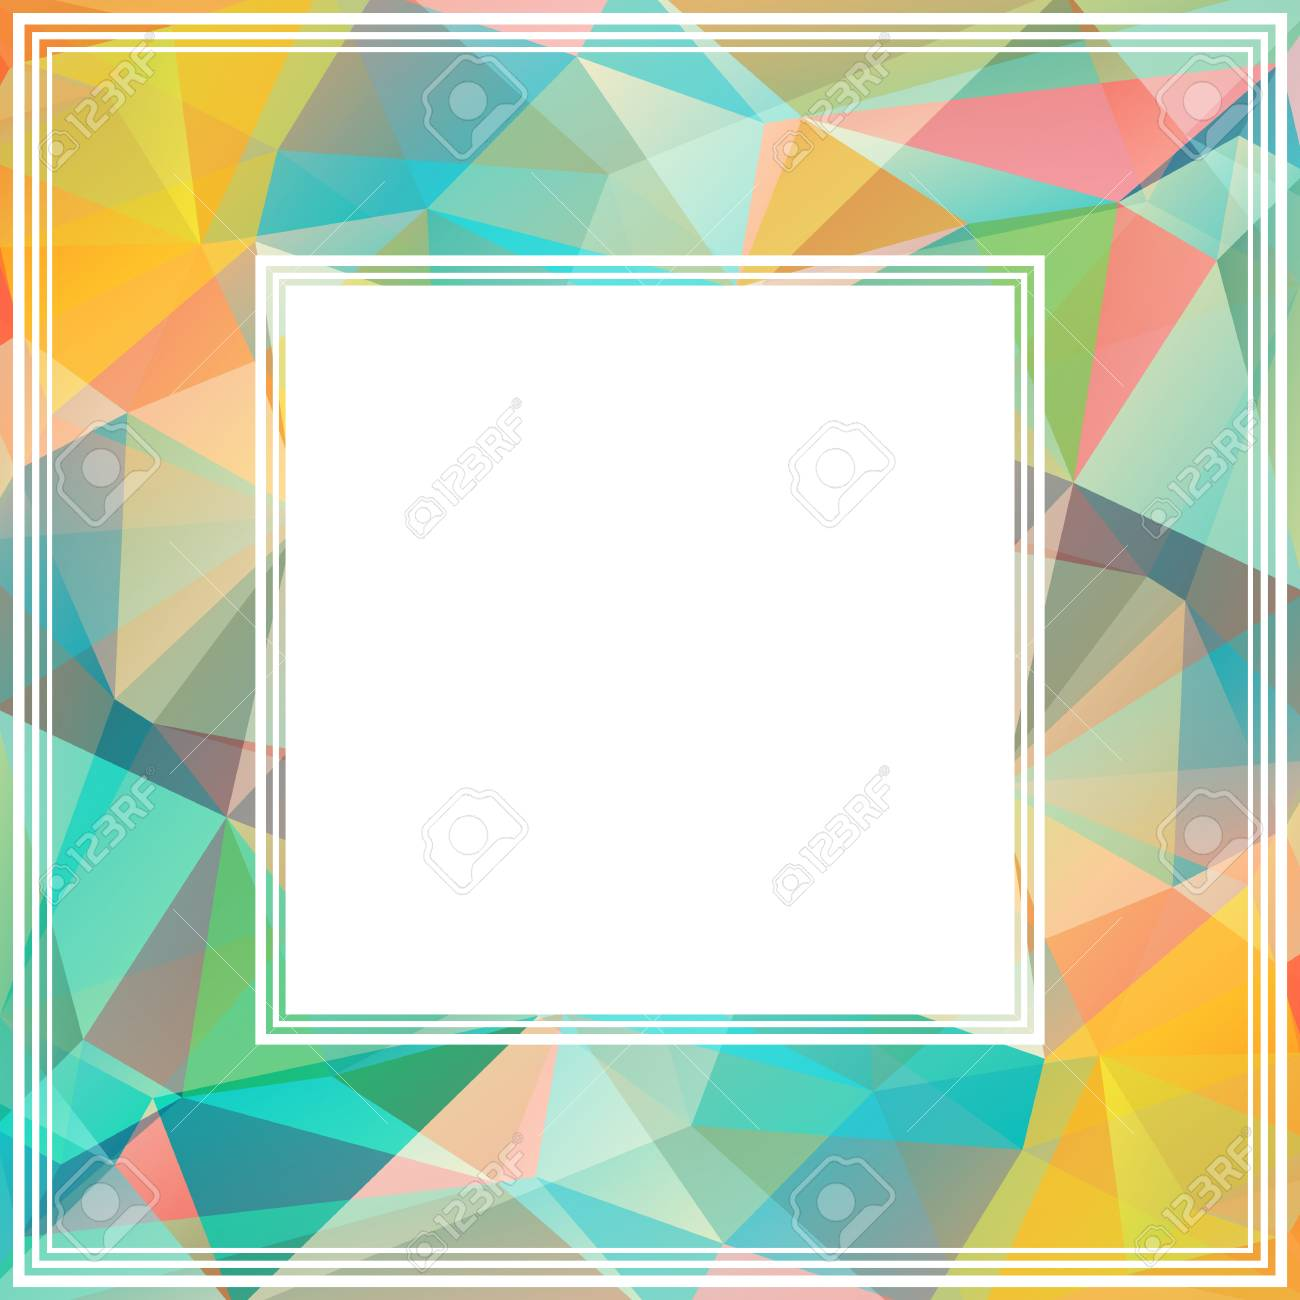 Polygonal Abstract Border With Blue And Yellow Triangles